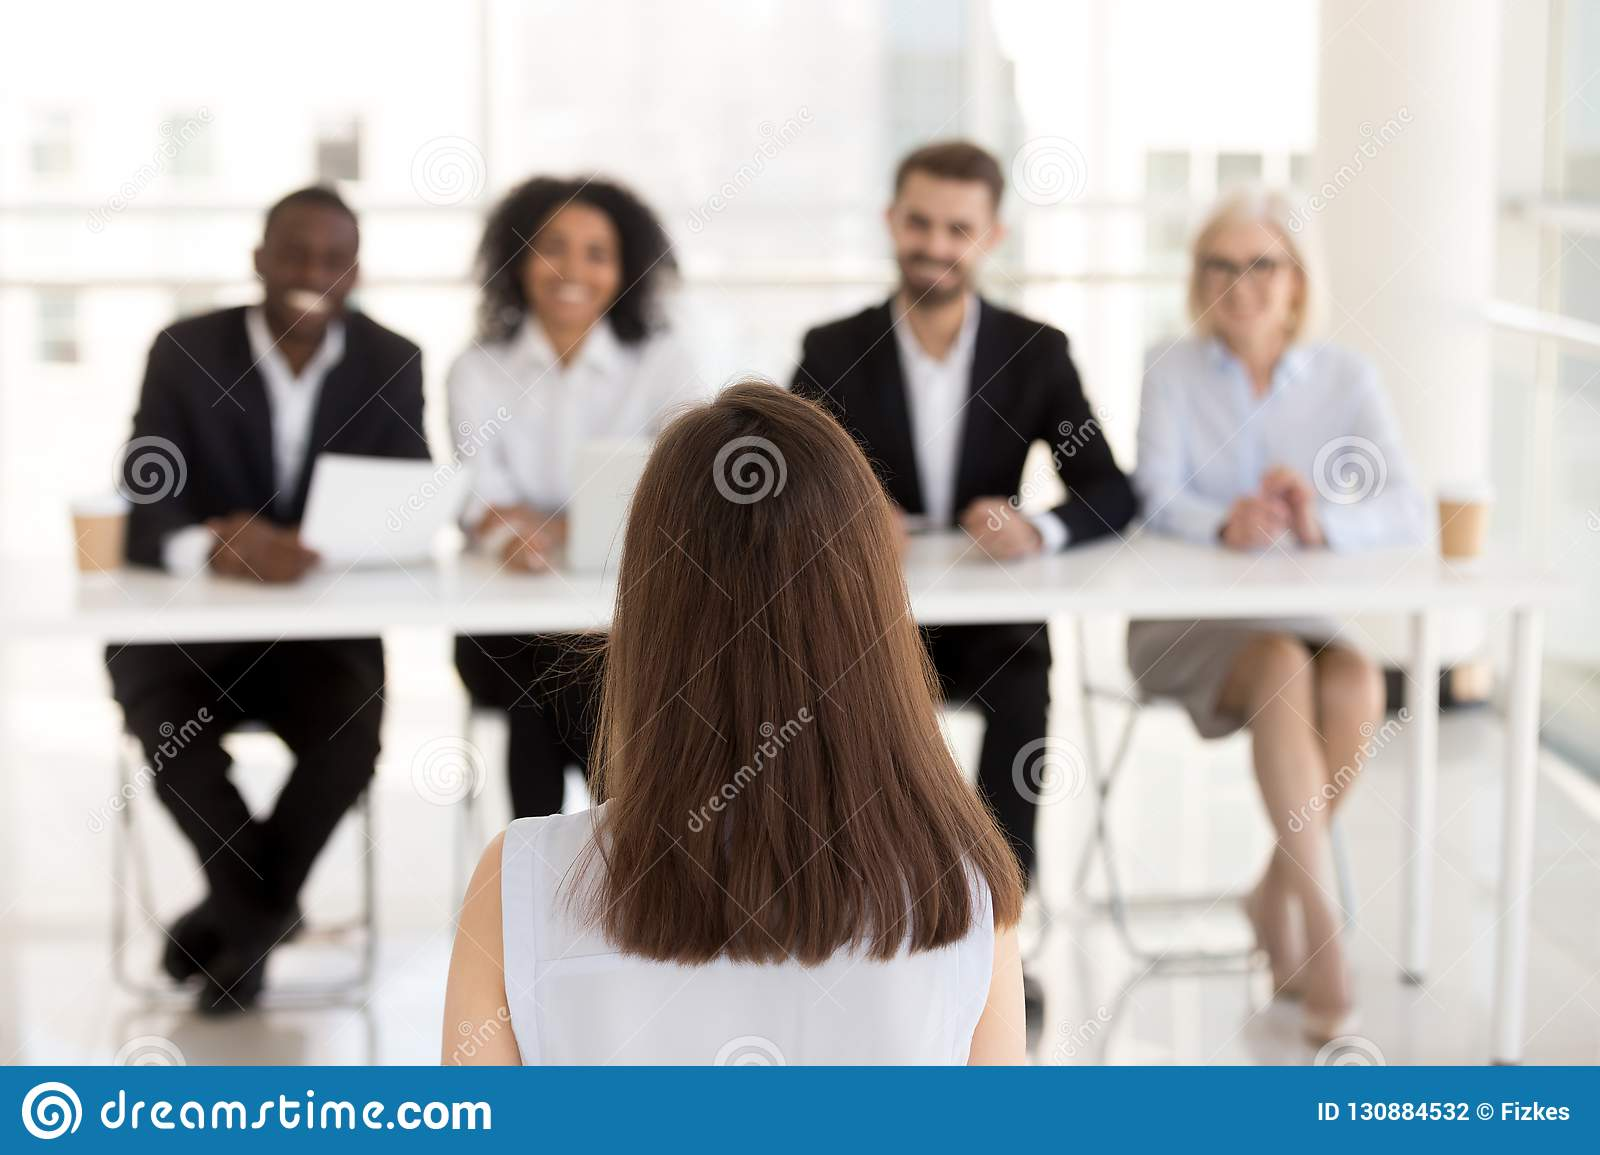 Female job candidate make good first impression on HR managers